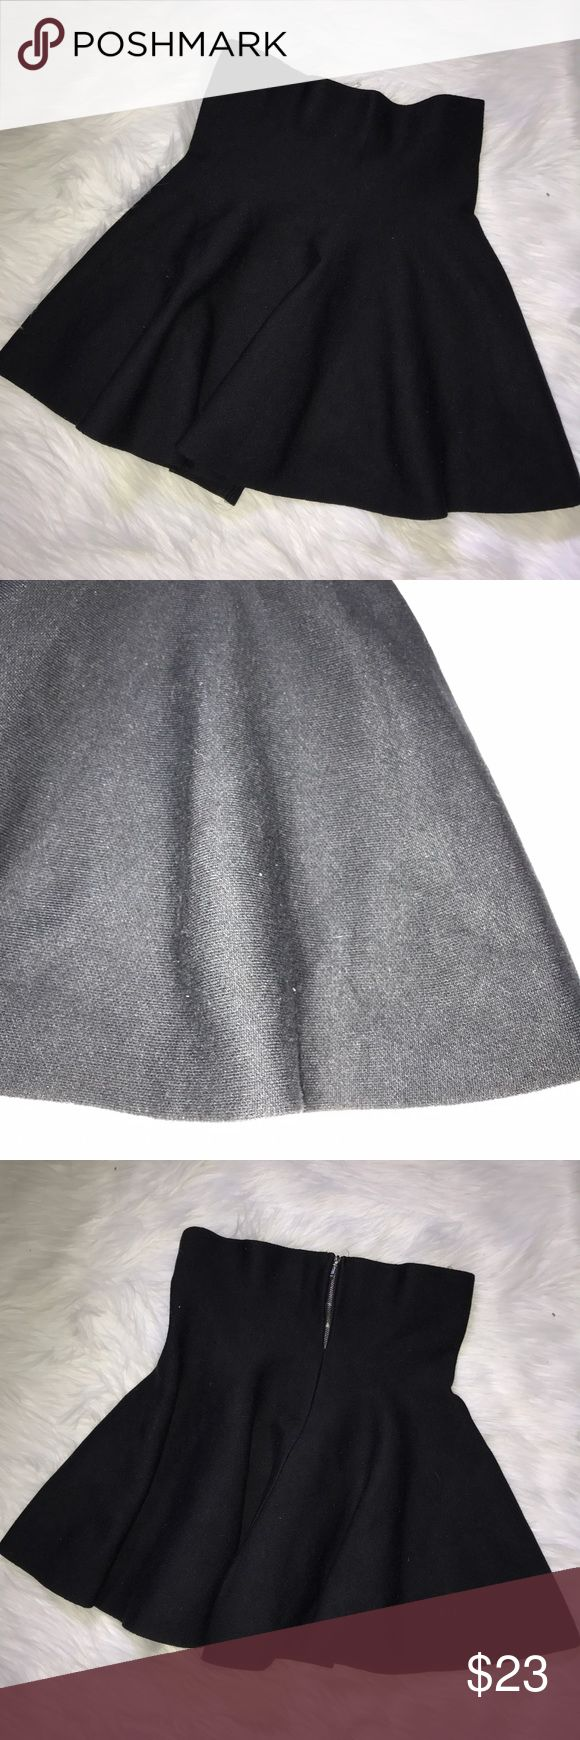 "Stella Luce Black Peplum Skirt Back Zipper Sz Lrg Stella Luce Black Peplum Skirt Back Zipper Sz Lrg                                             Length -- 18.5""      ///     Waist -- 14""                                                                      Gently used, no flaws. Please see photos for details Stella Luce Skirts Mini"